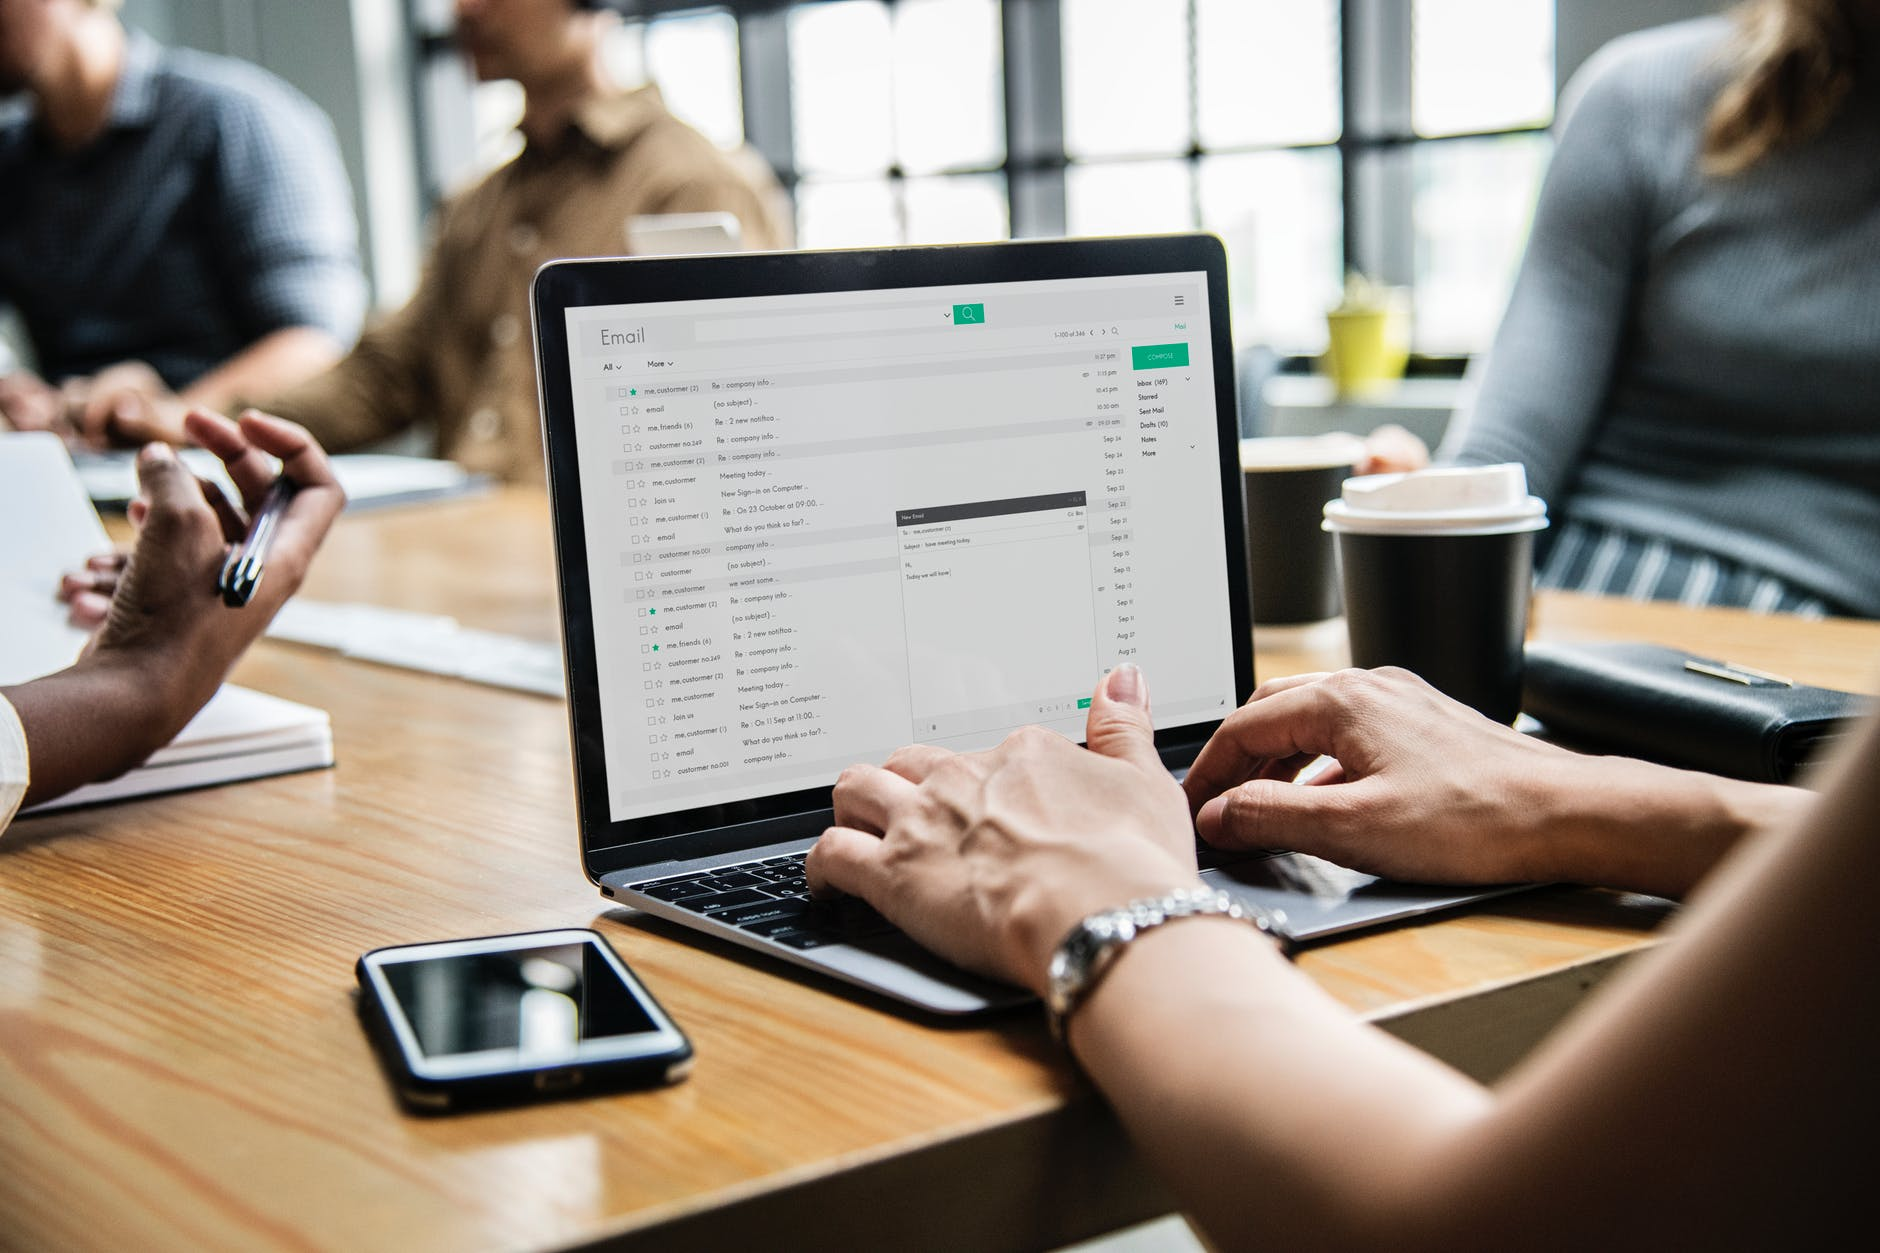 Mid size Indian professional firms